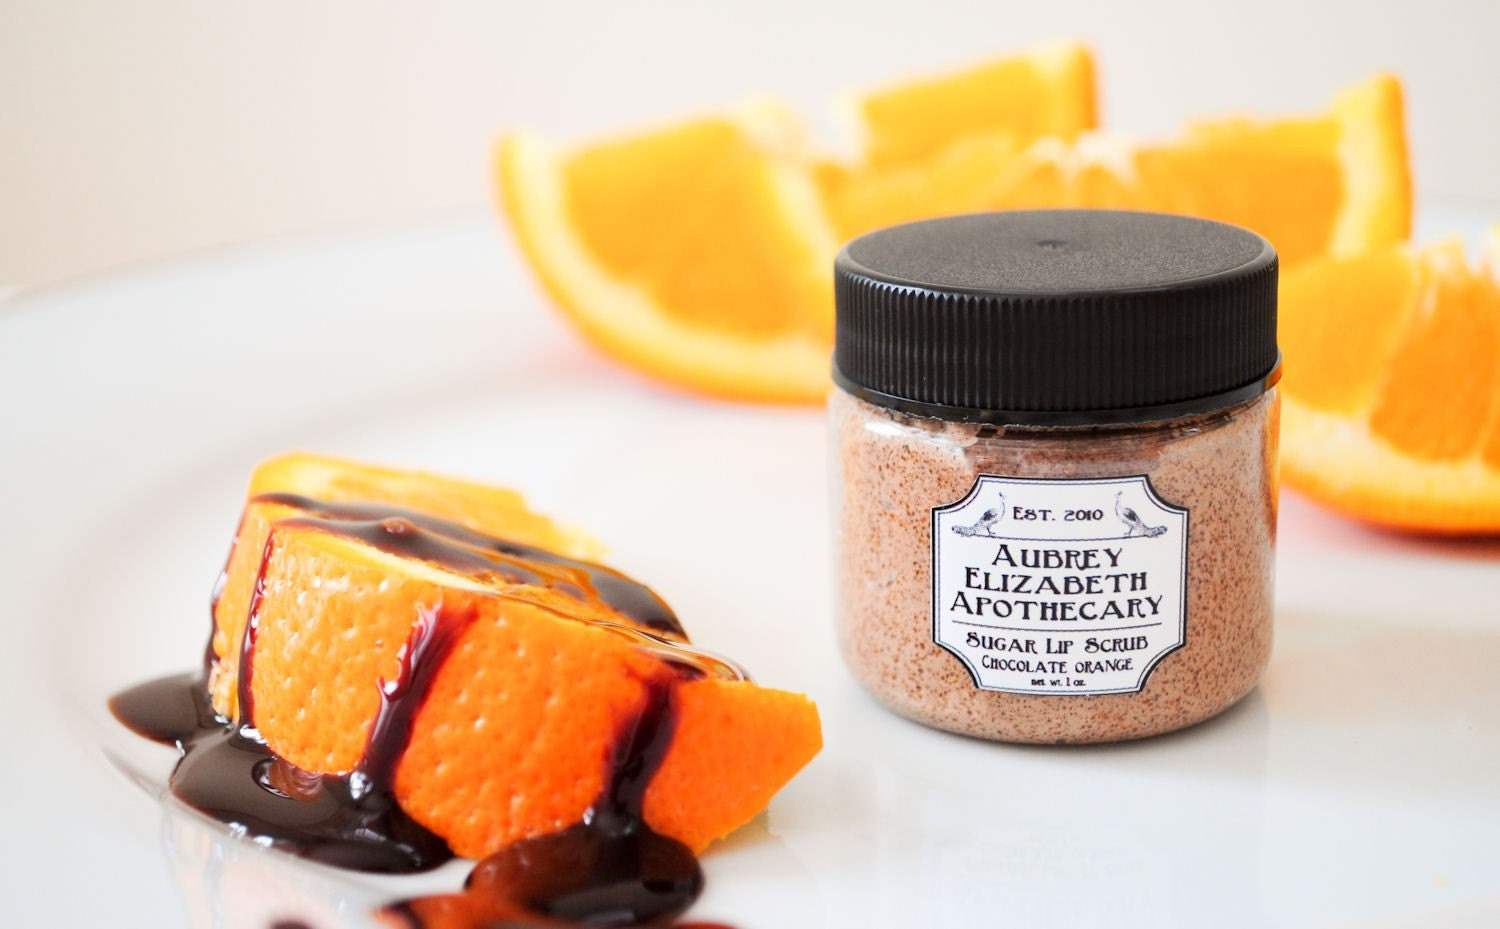 Chocolate Orange  Sugar Lip Scrub in a Jar - all natural & vegan -  2 in 1 scrub and balm